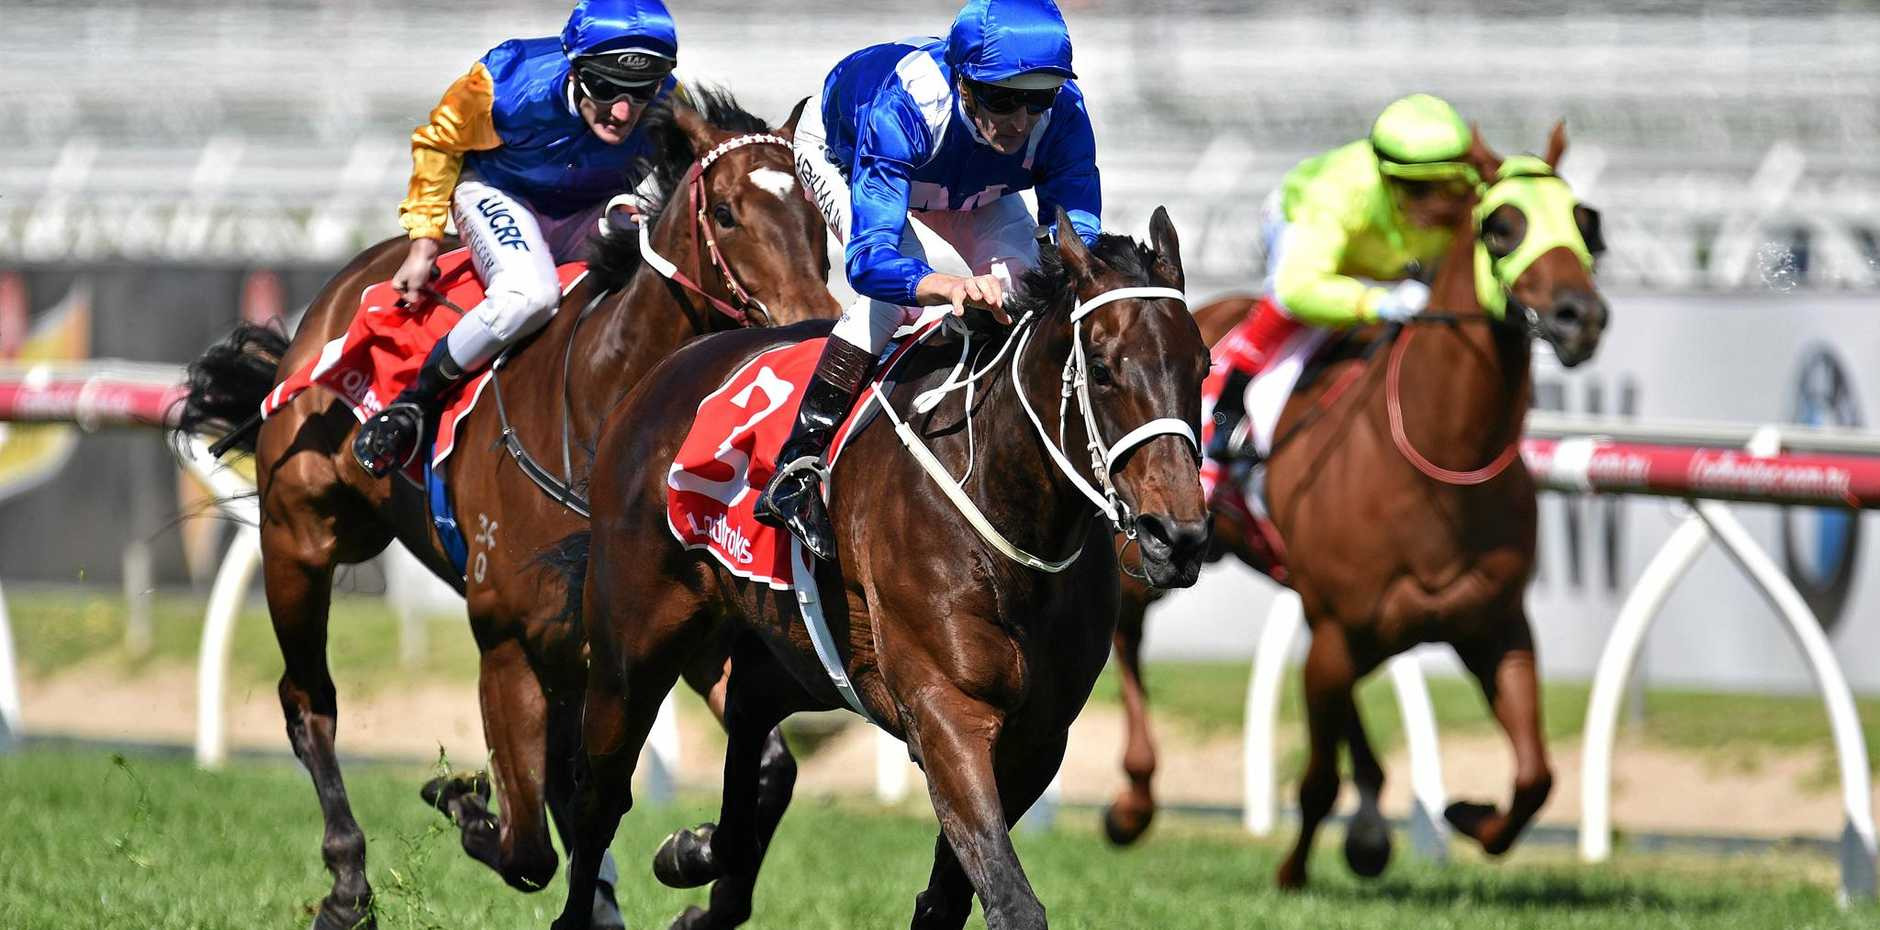 Hugh Bowman (centre) rides Winx to victory in the Caulfield Stakes earlier this month.